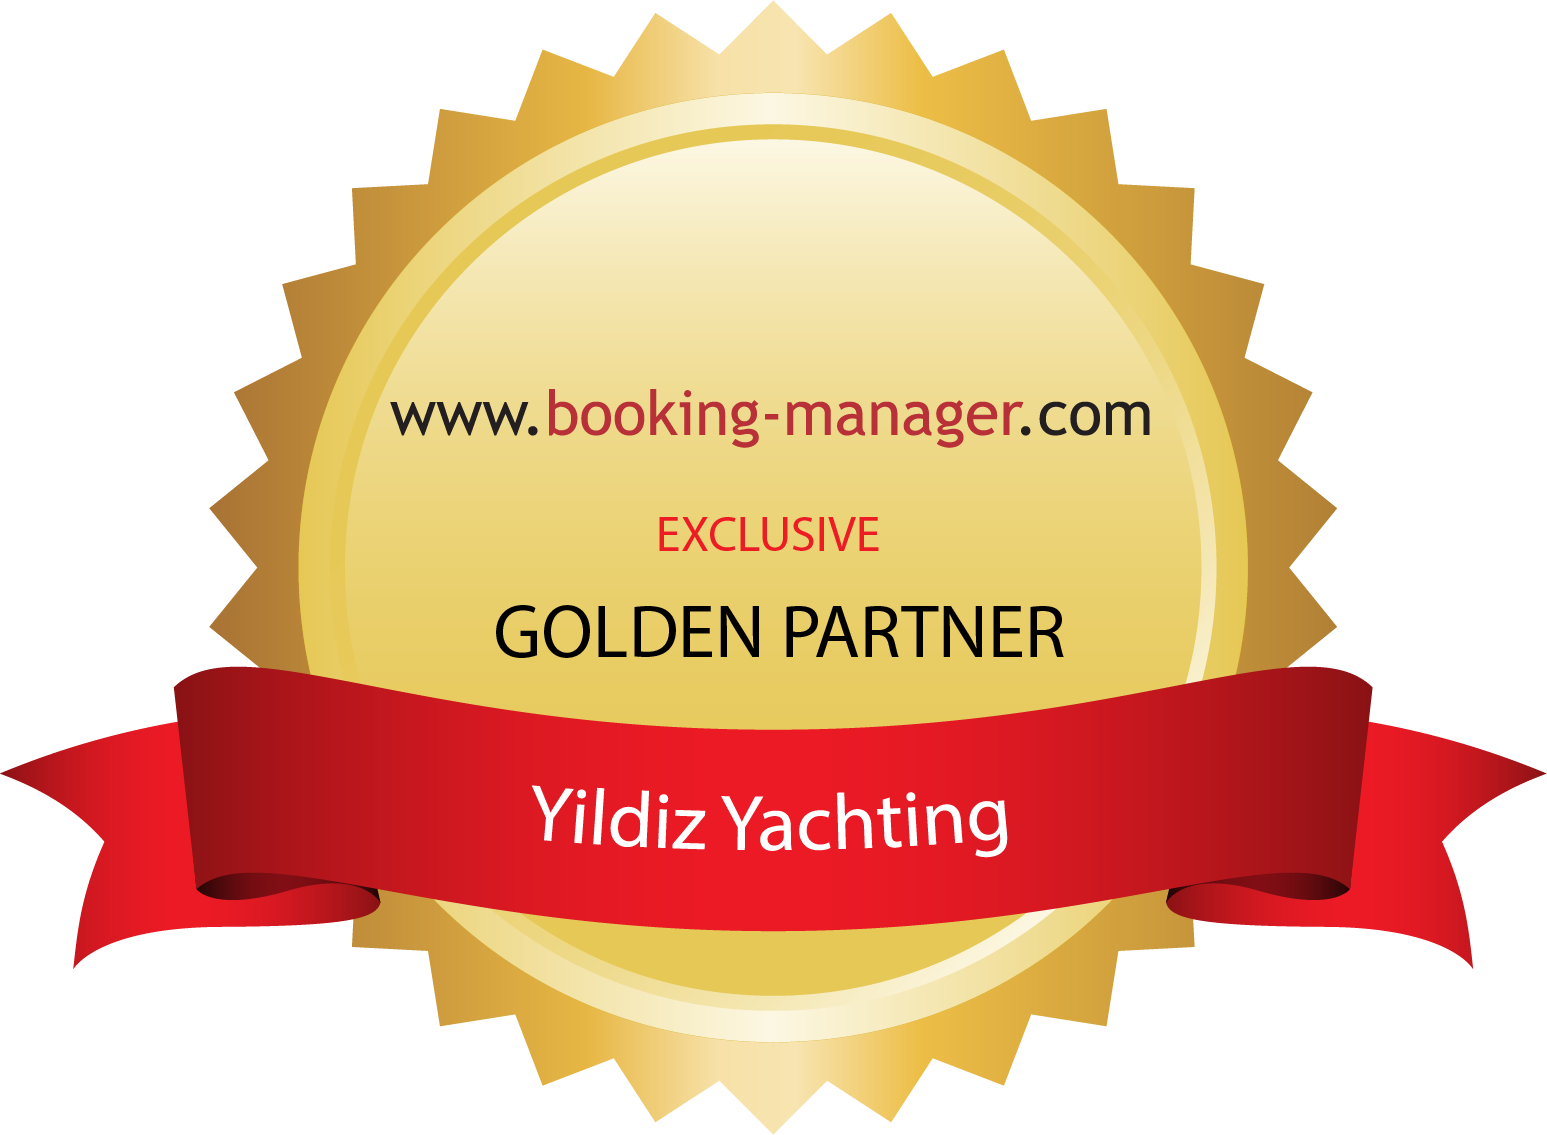 Booking Maanger Golden Partner